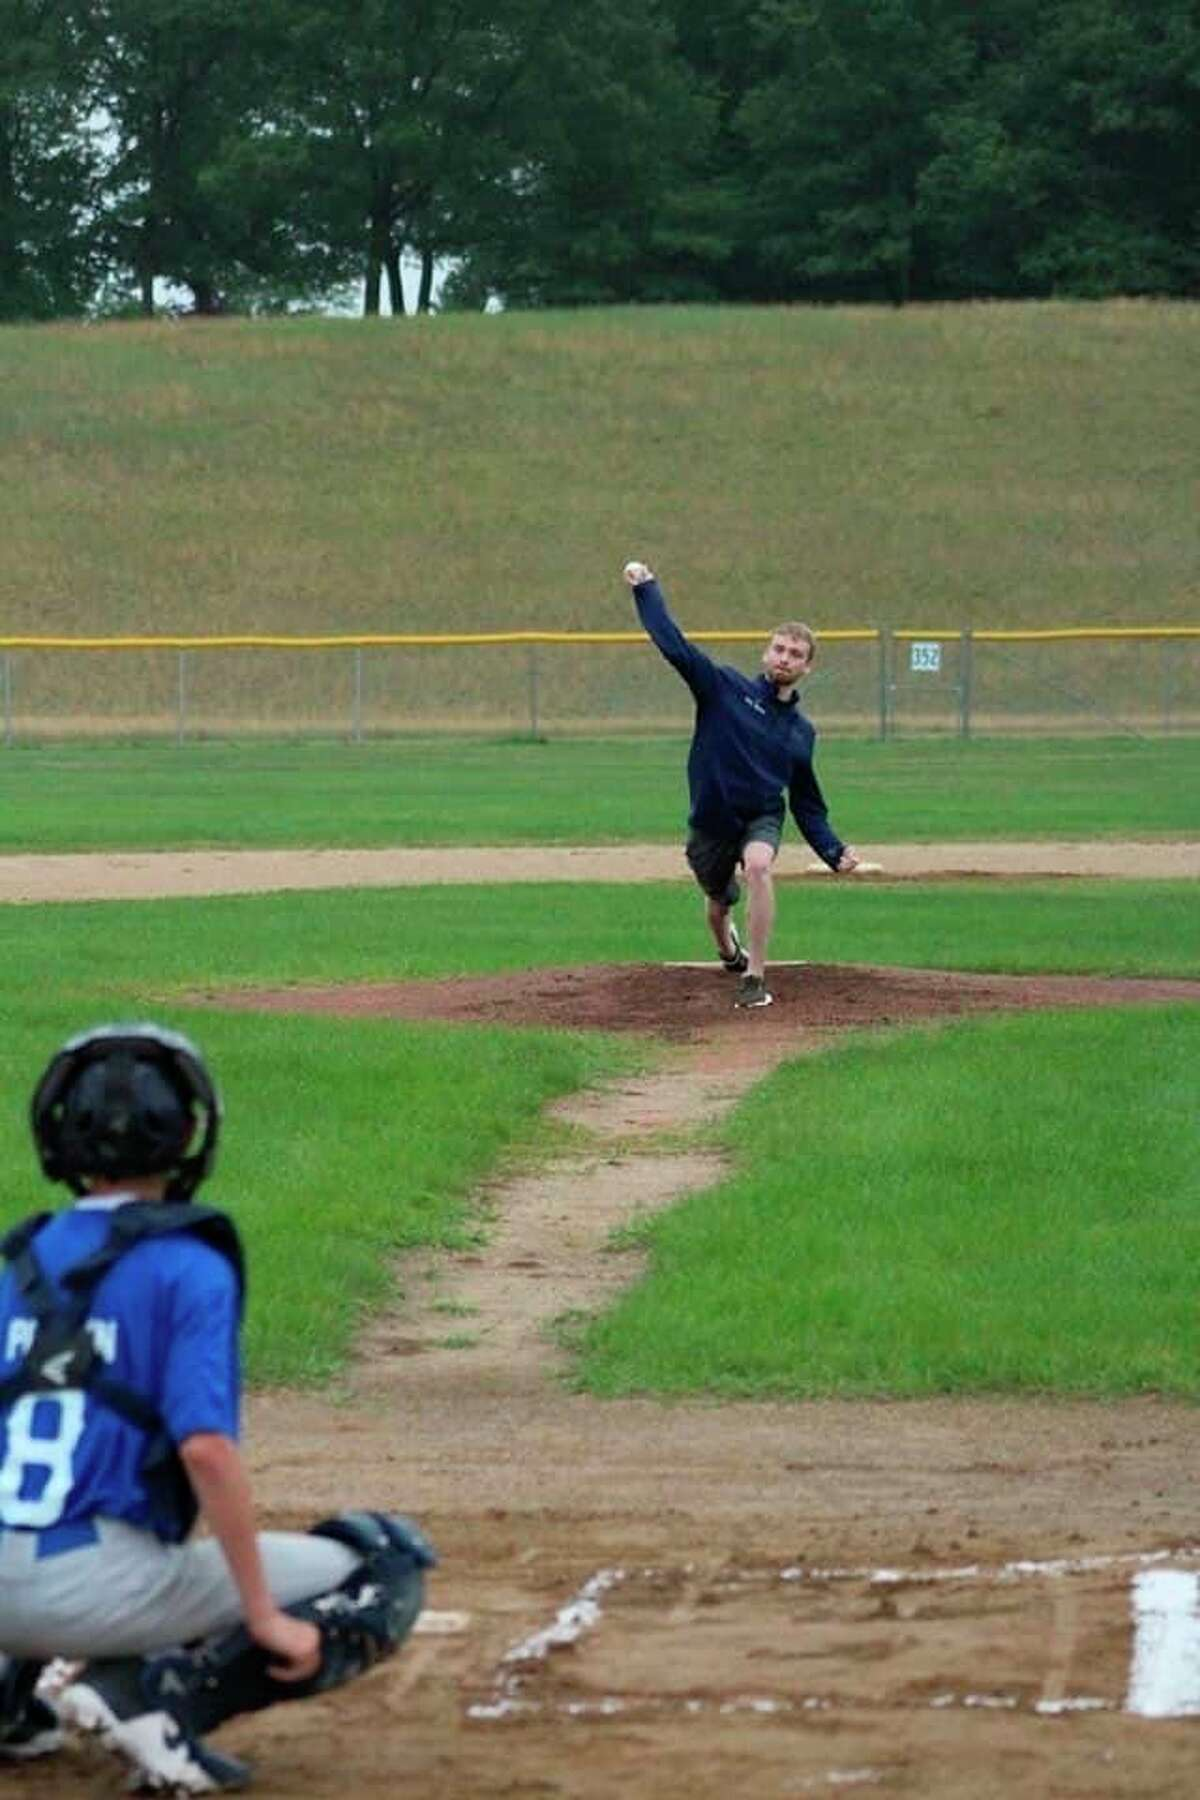 Jeff Stewart's sonIainthrows out the first pitch at Manistee's weekend youth baseball tournament on Friday. (Courtesy photo)